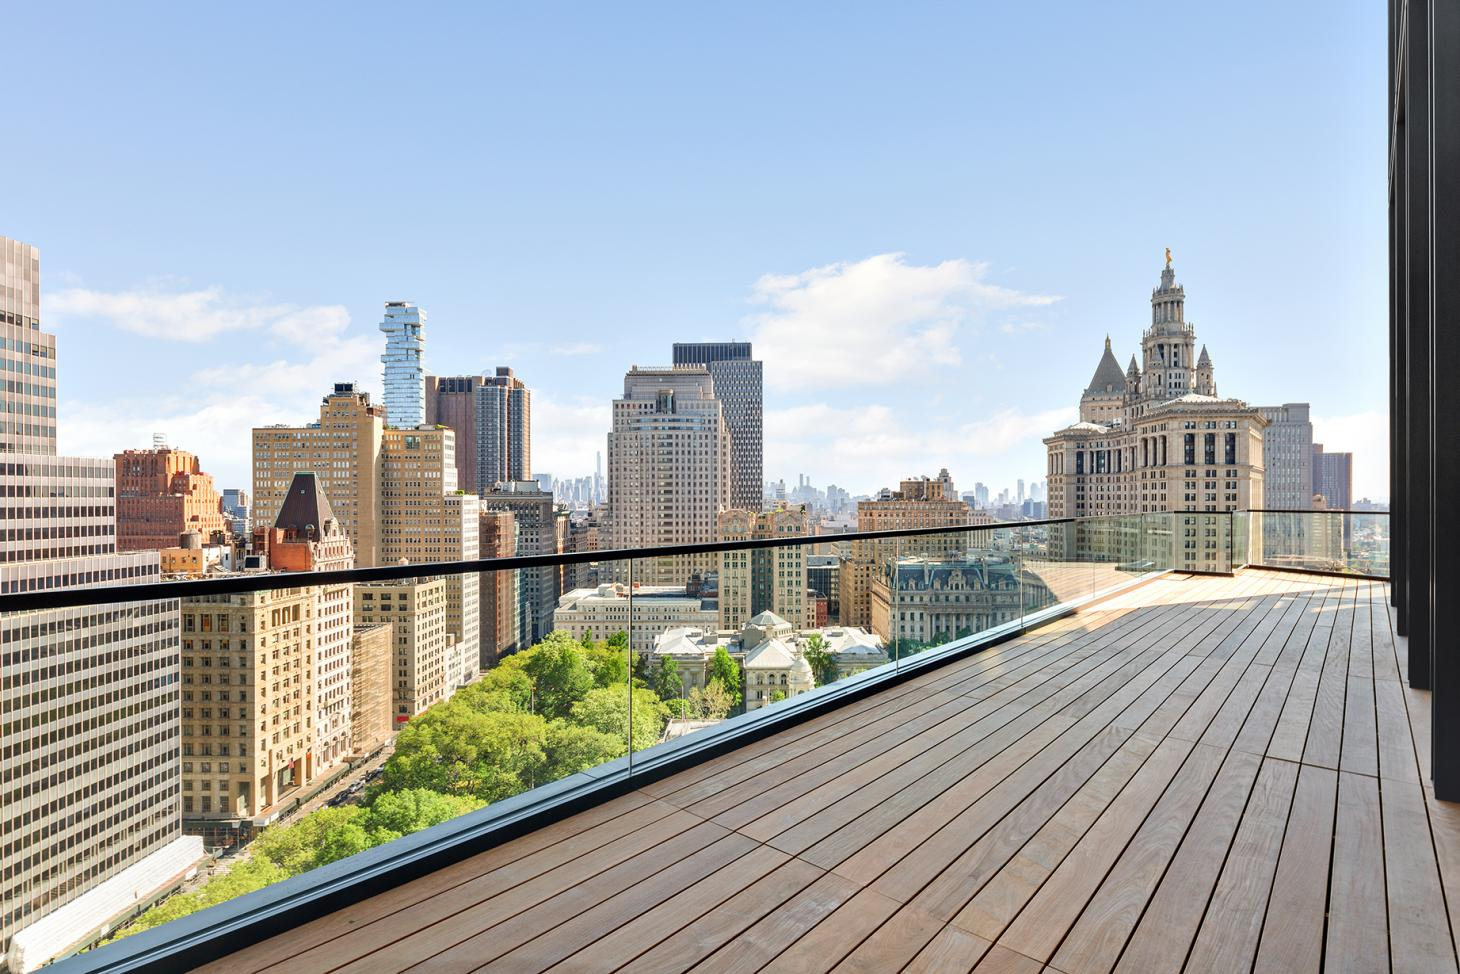 wood decked terrace for the residents at No. 33 Park Row by RSH+P in New York